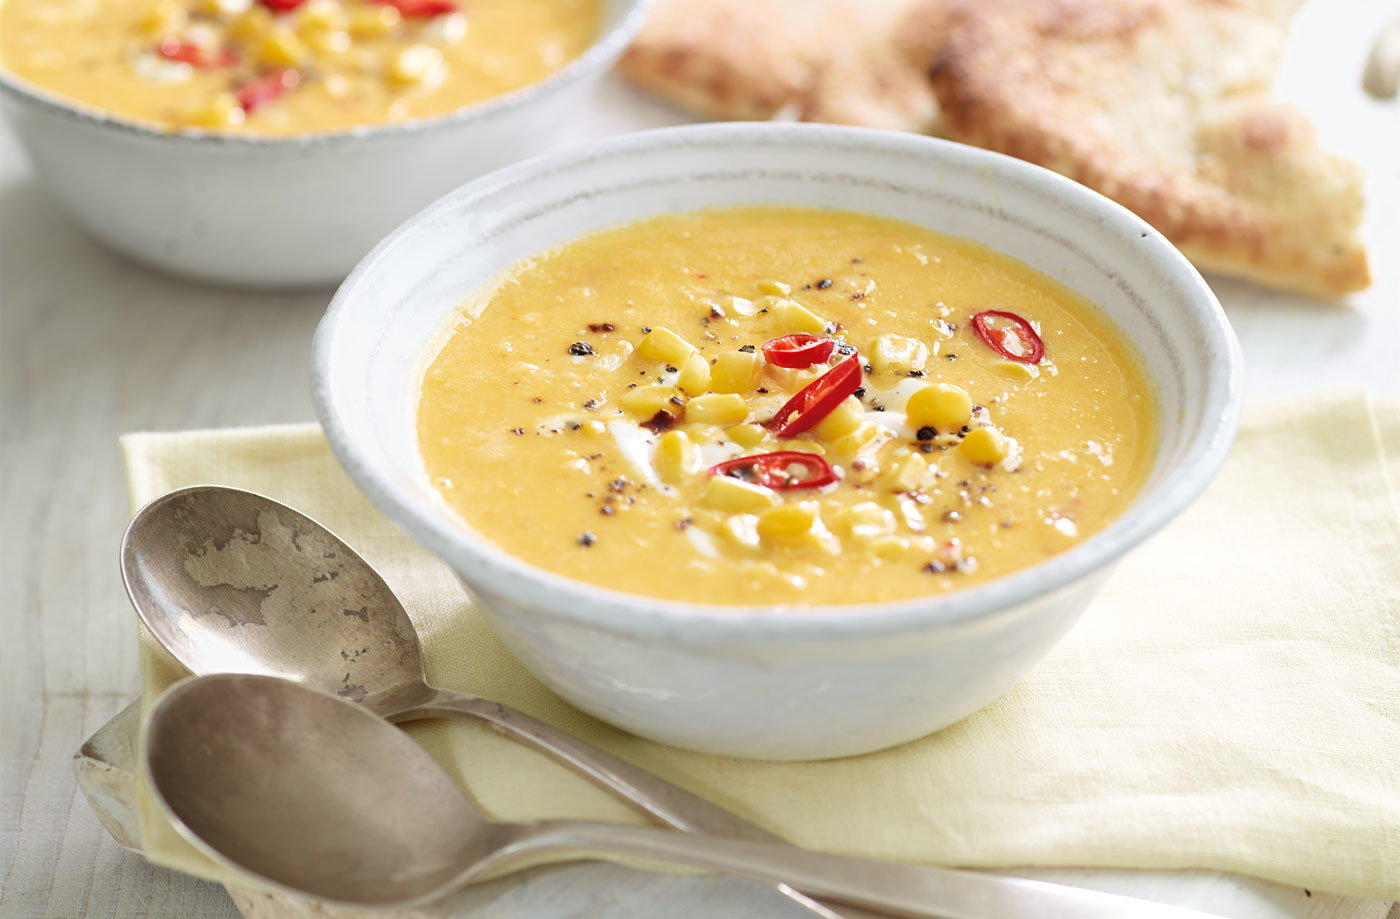 Chilled lemongrass and sweetcorn soup